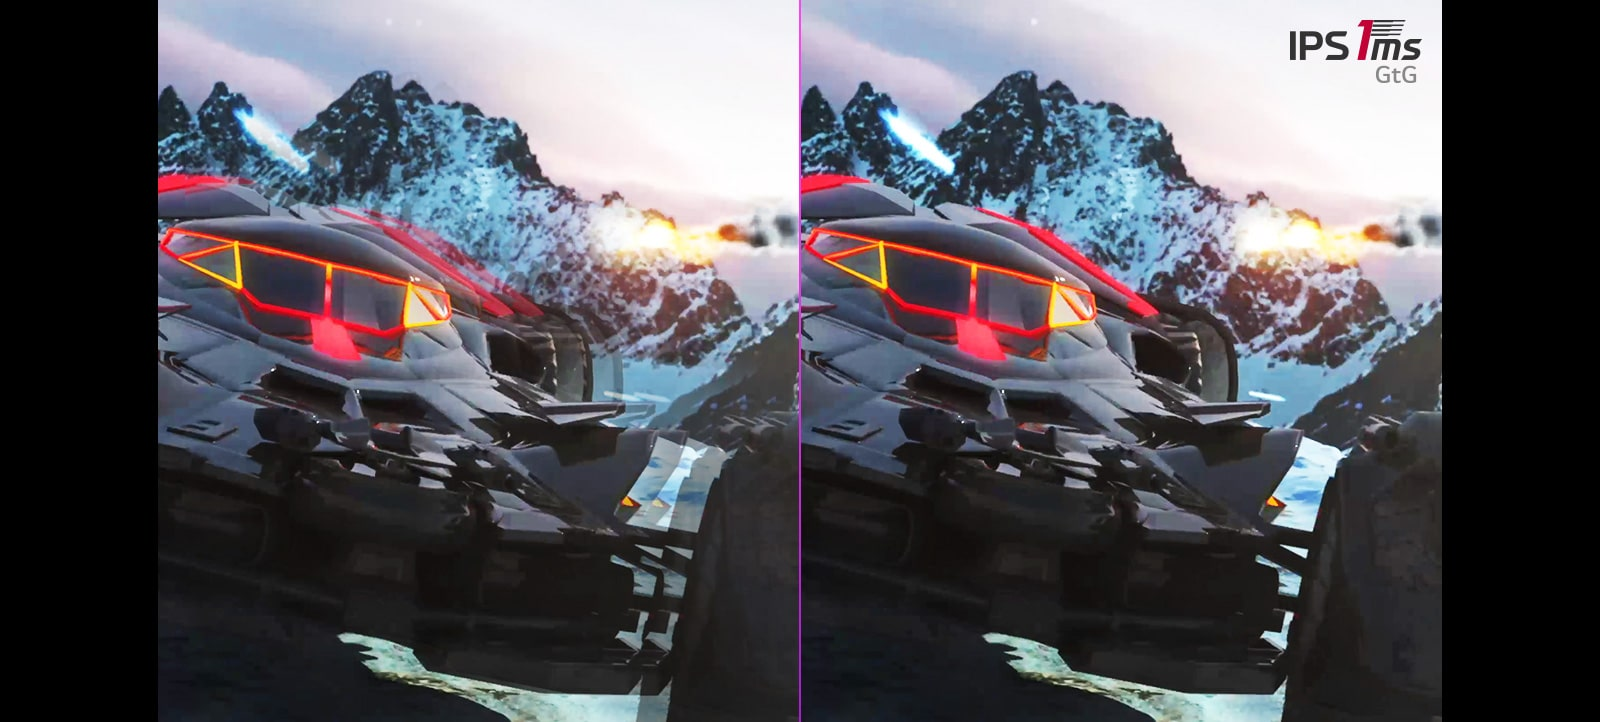 comparison of the afterimages with IPS 5ms and with IPS 1ms